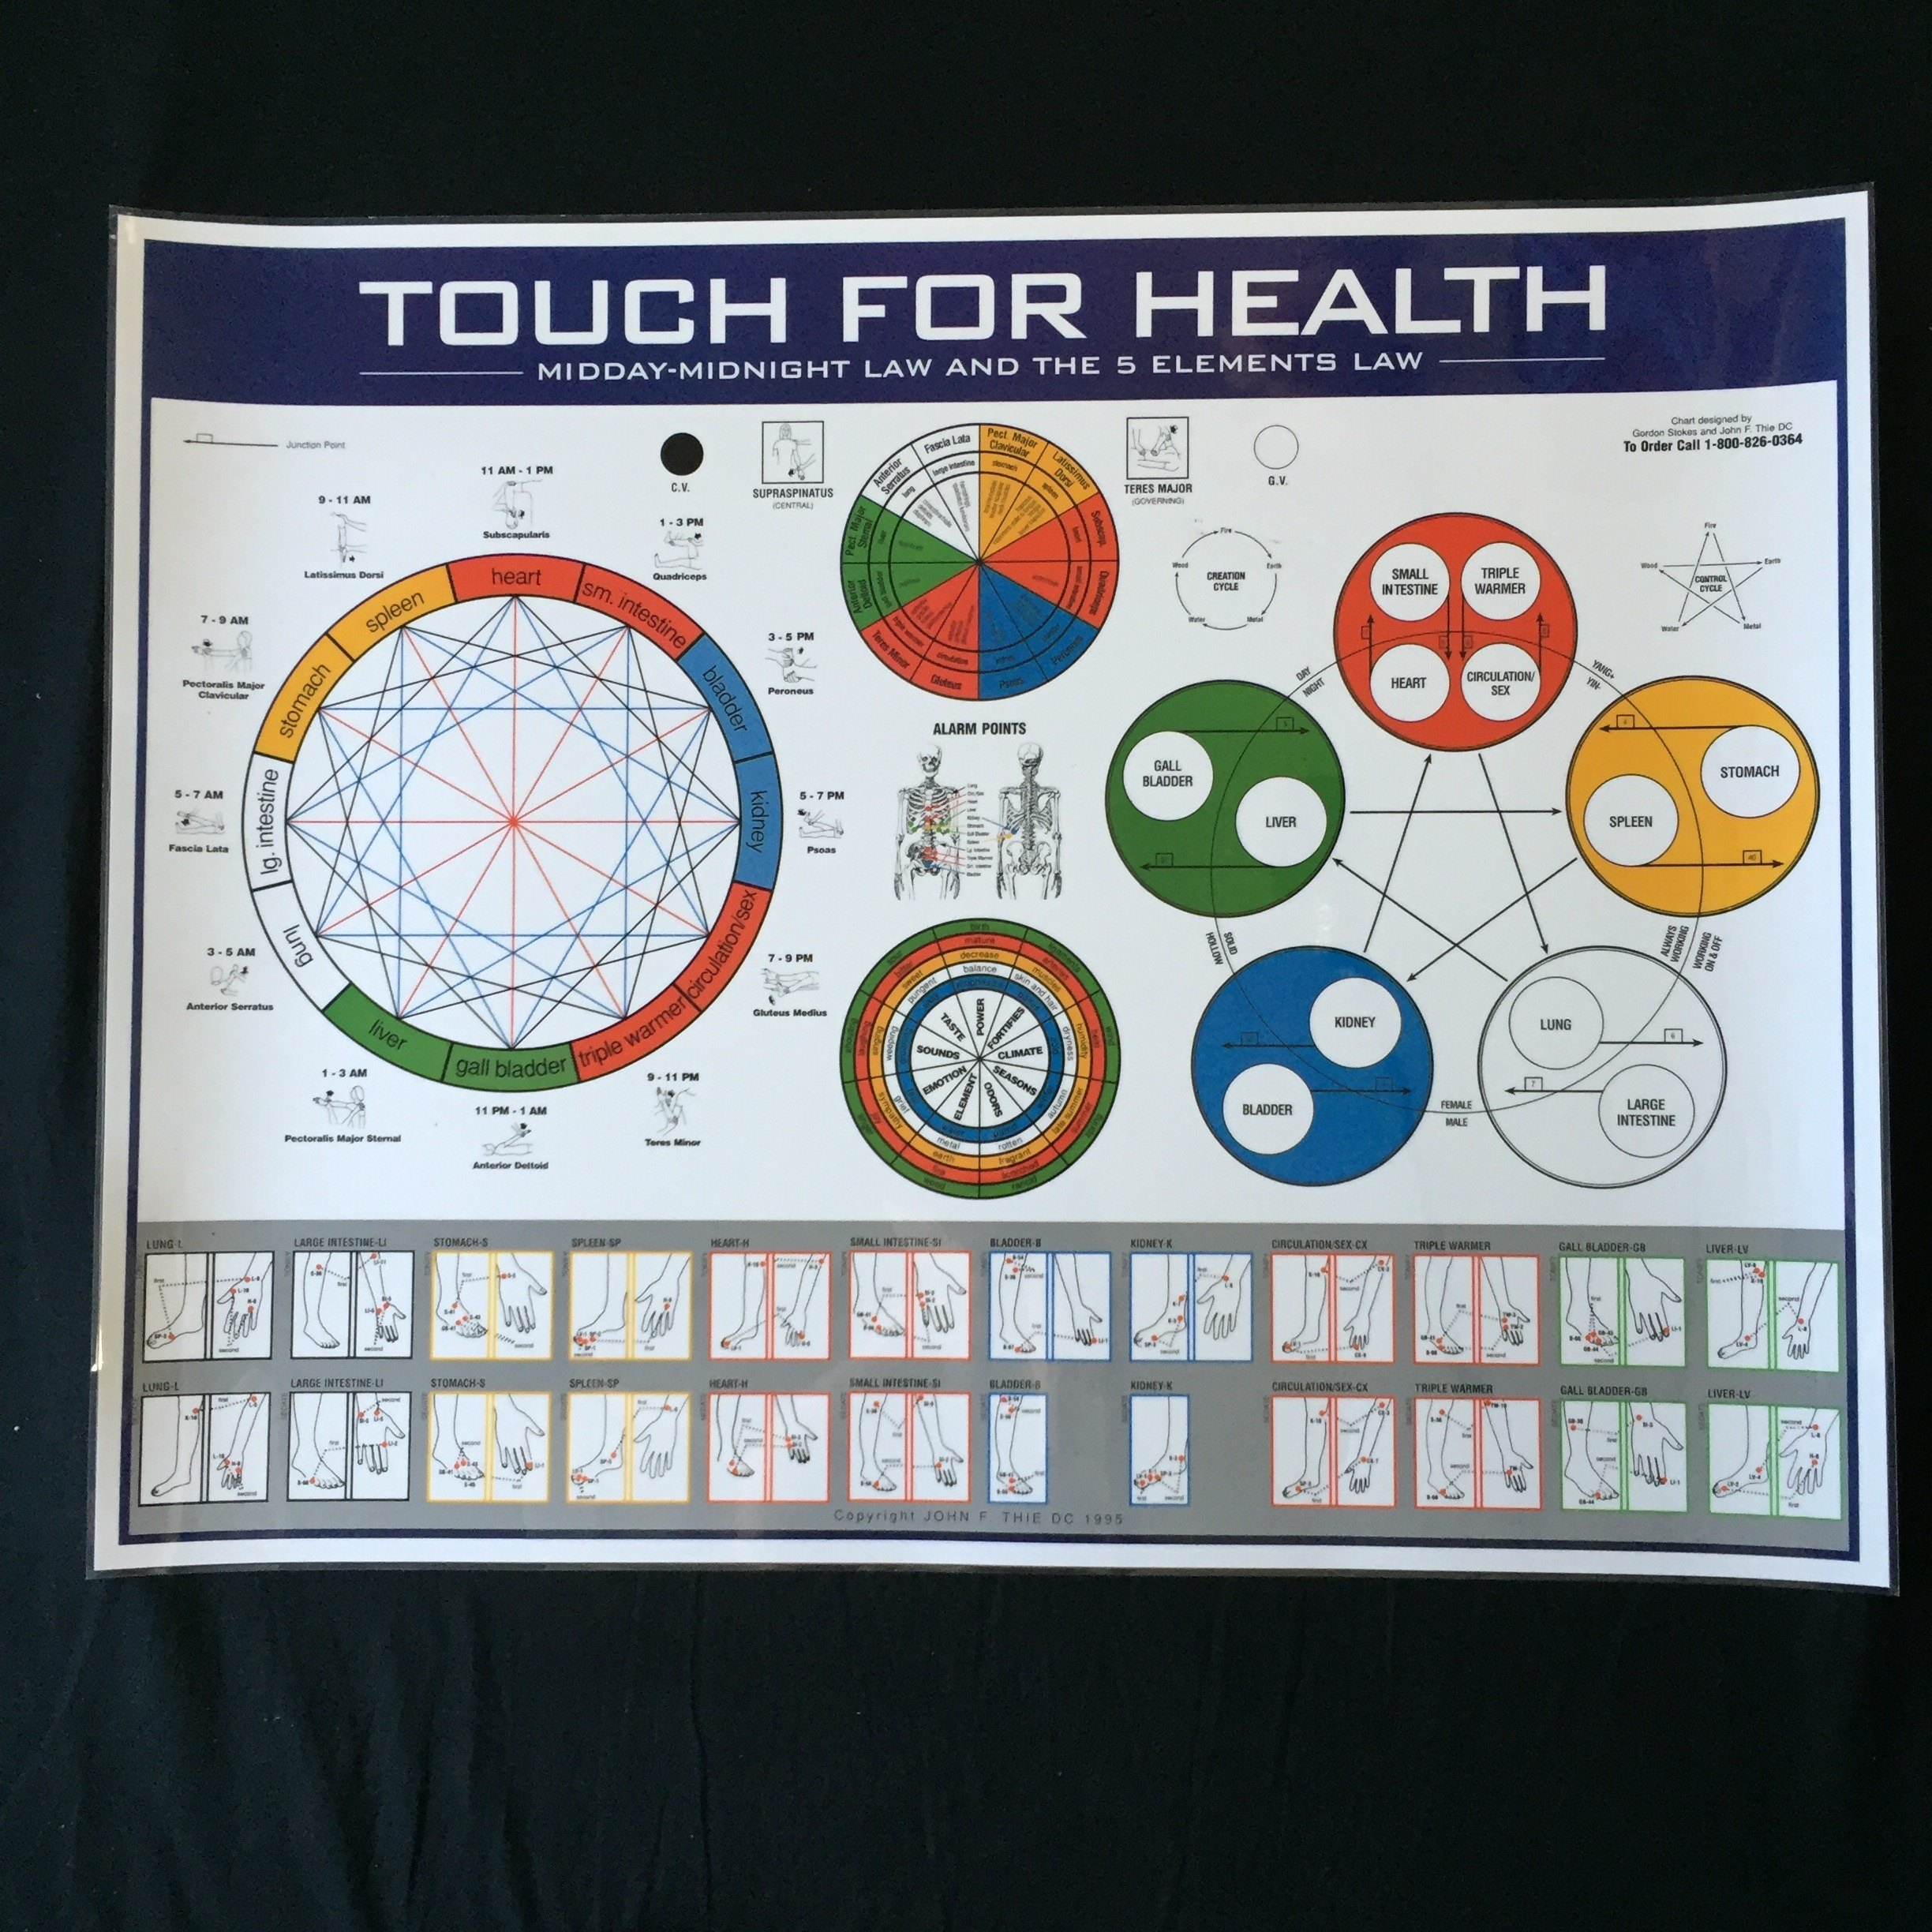 5 Element & Mid-Day Midnight Wall Chart